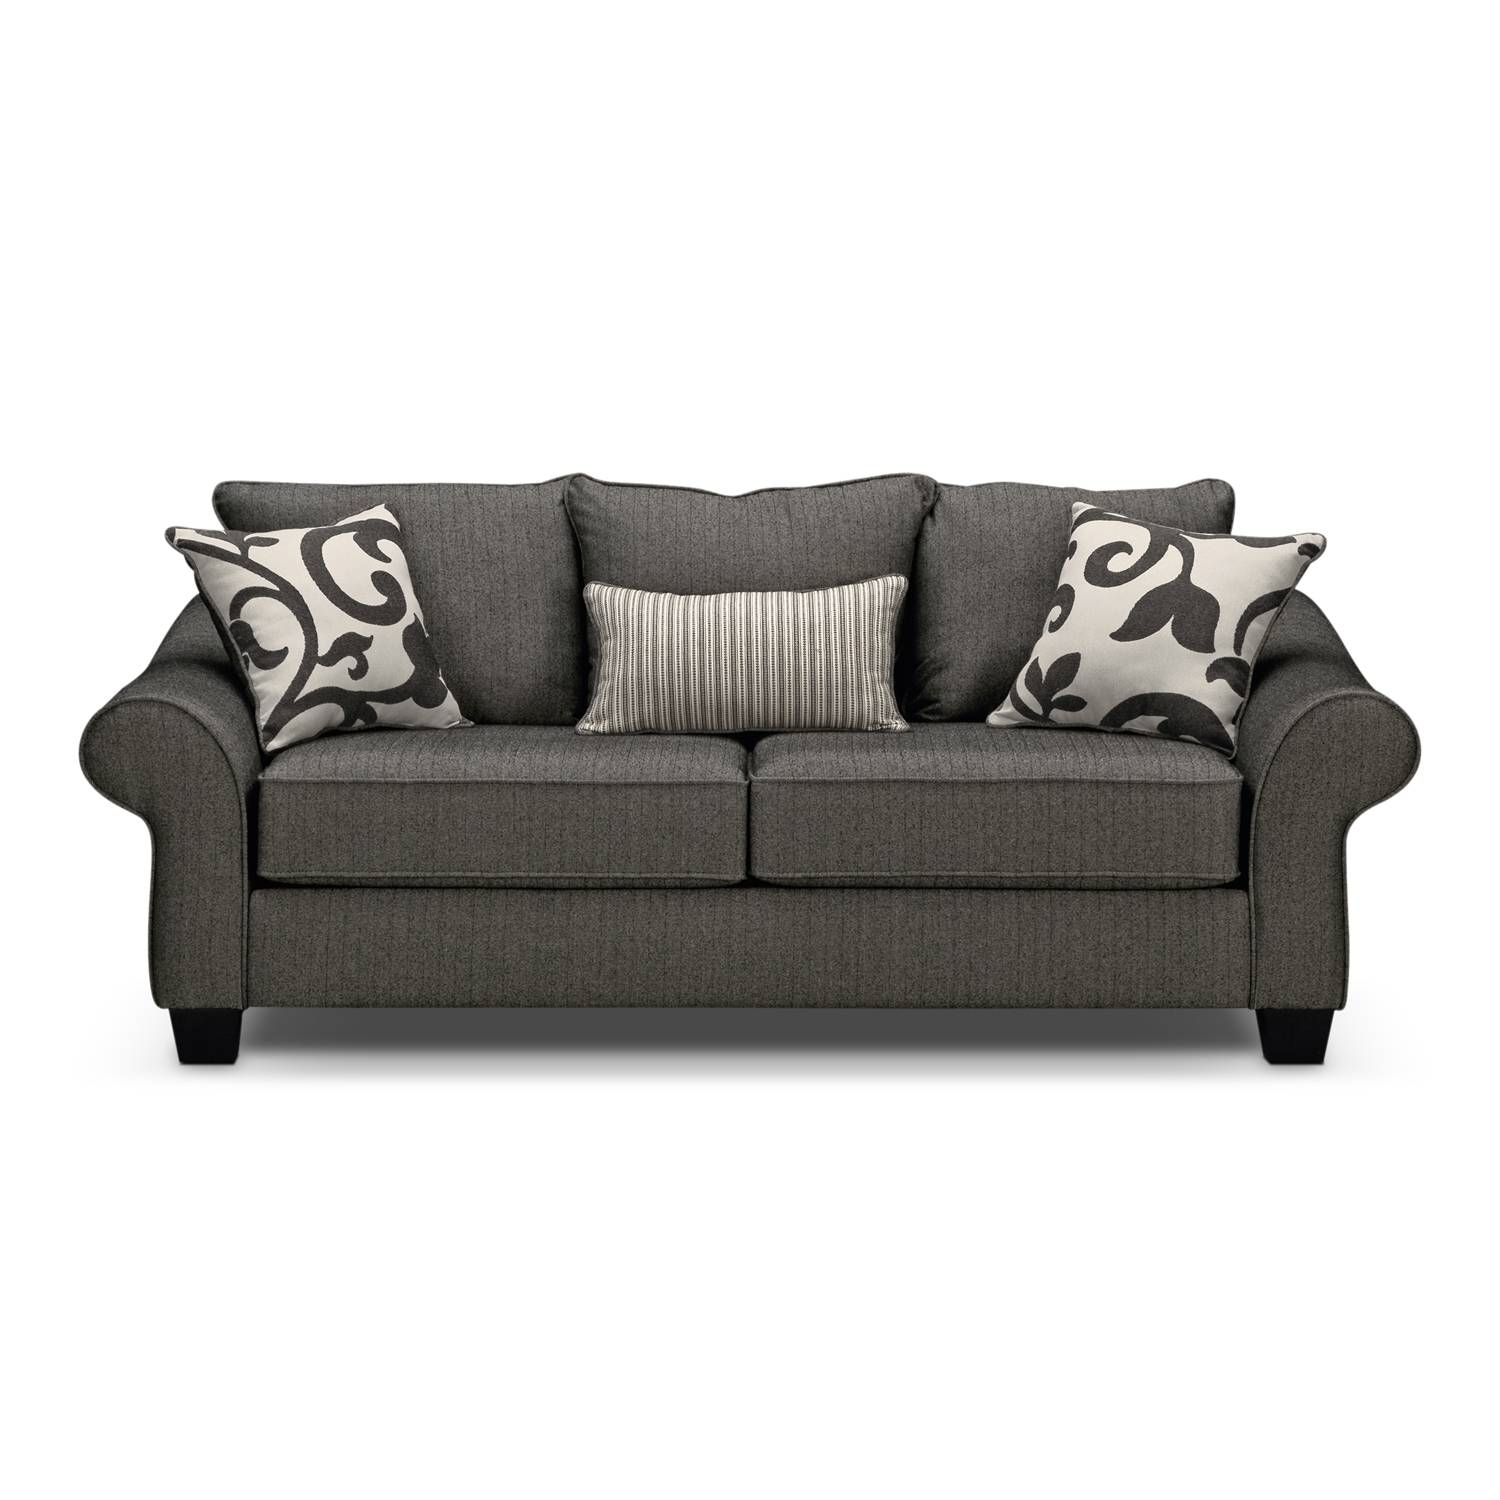 Sofas Center : Value City Furniture Sectional Sleepers Sofa Sale Regarding City Sofa Beds (View 29 of 30)